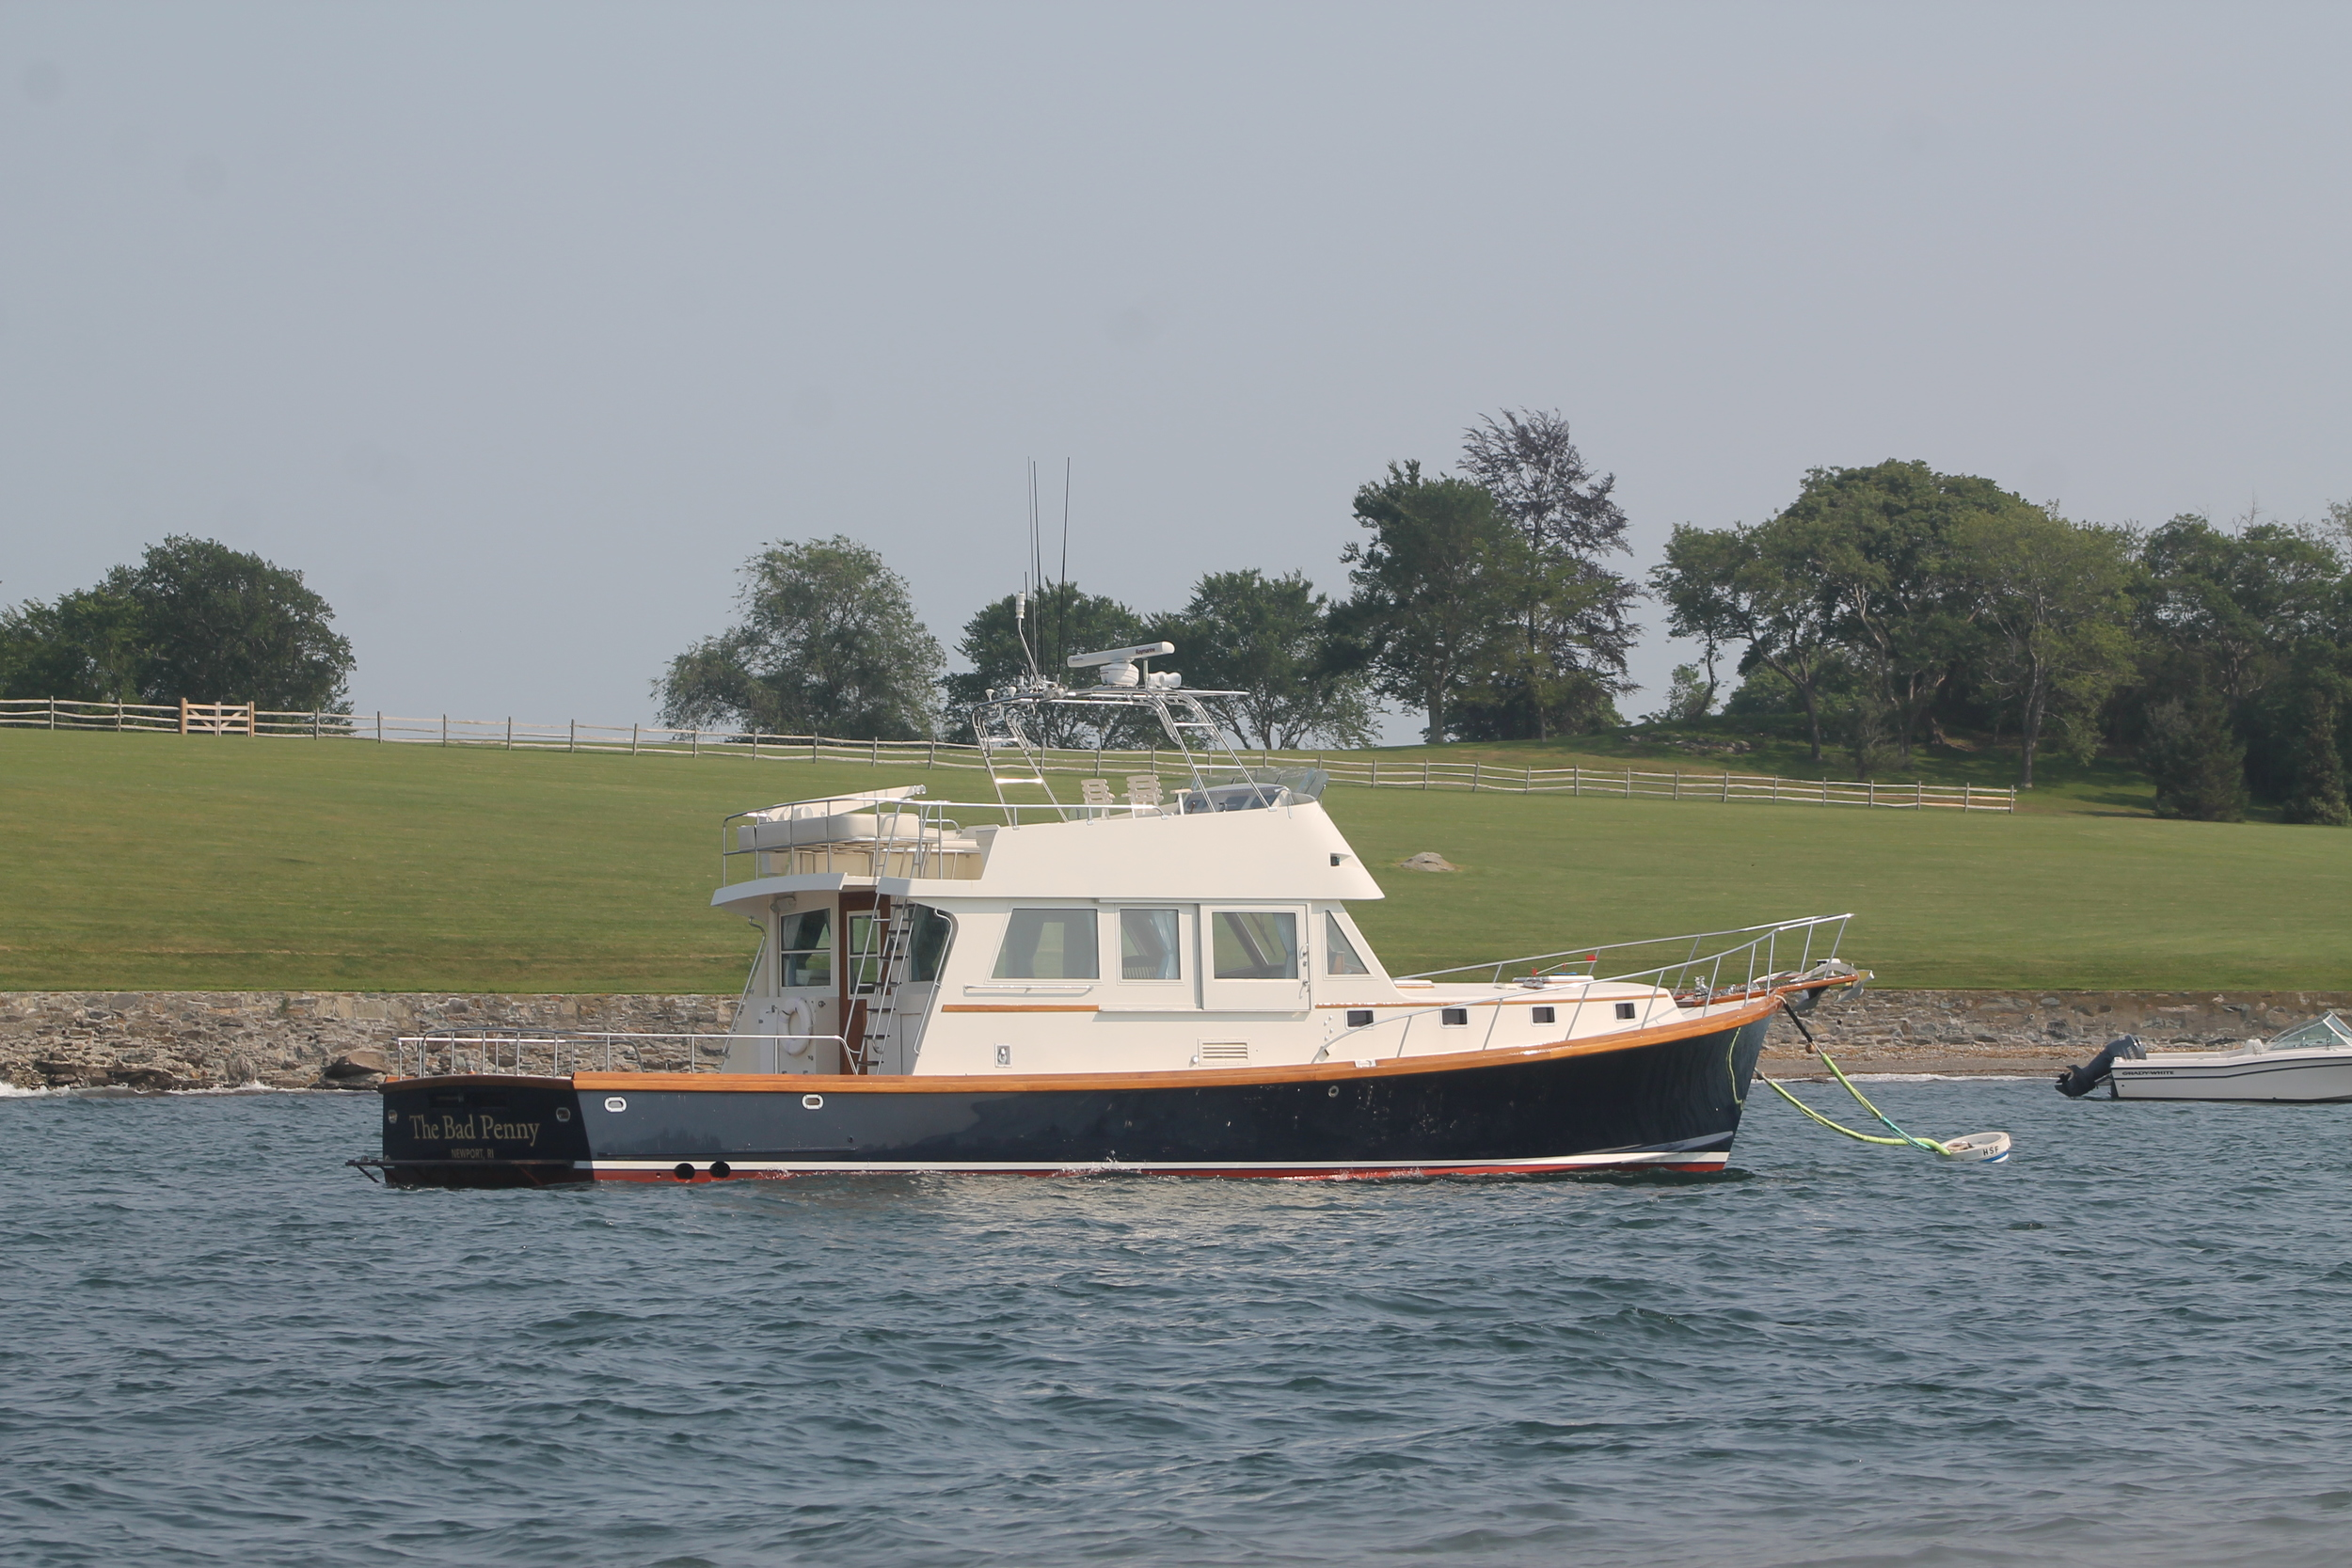 Boat anchored at Hammersmith Farm